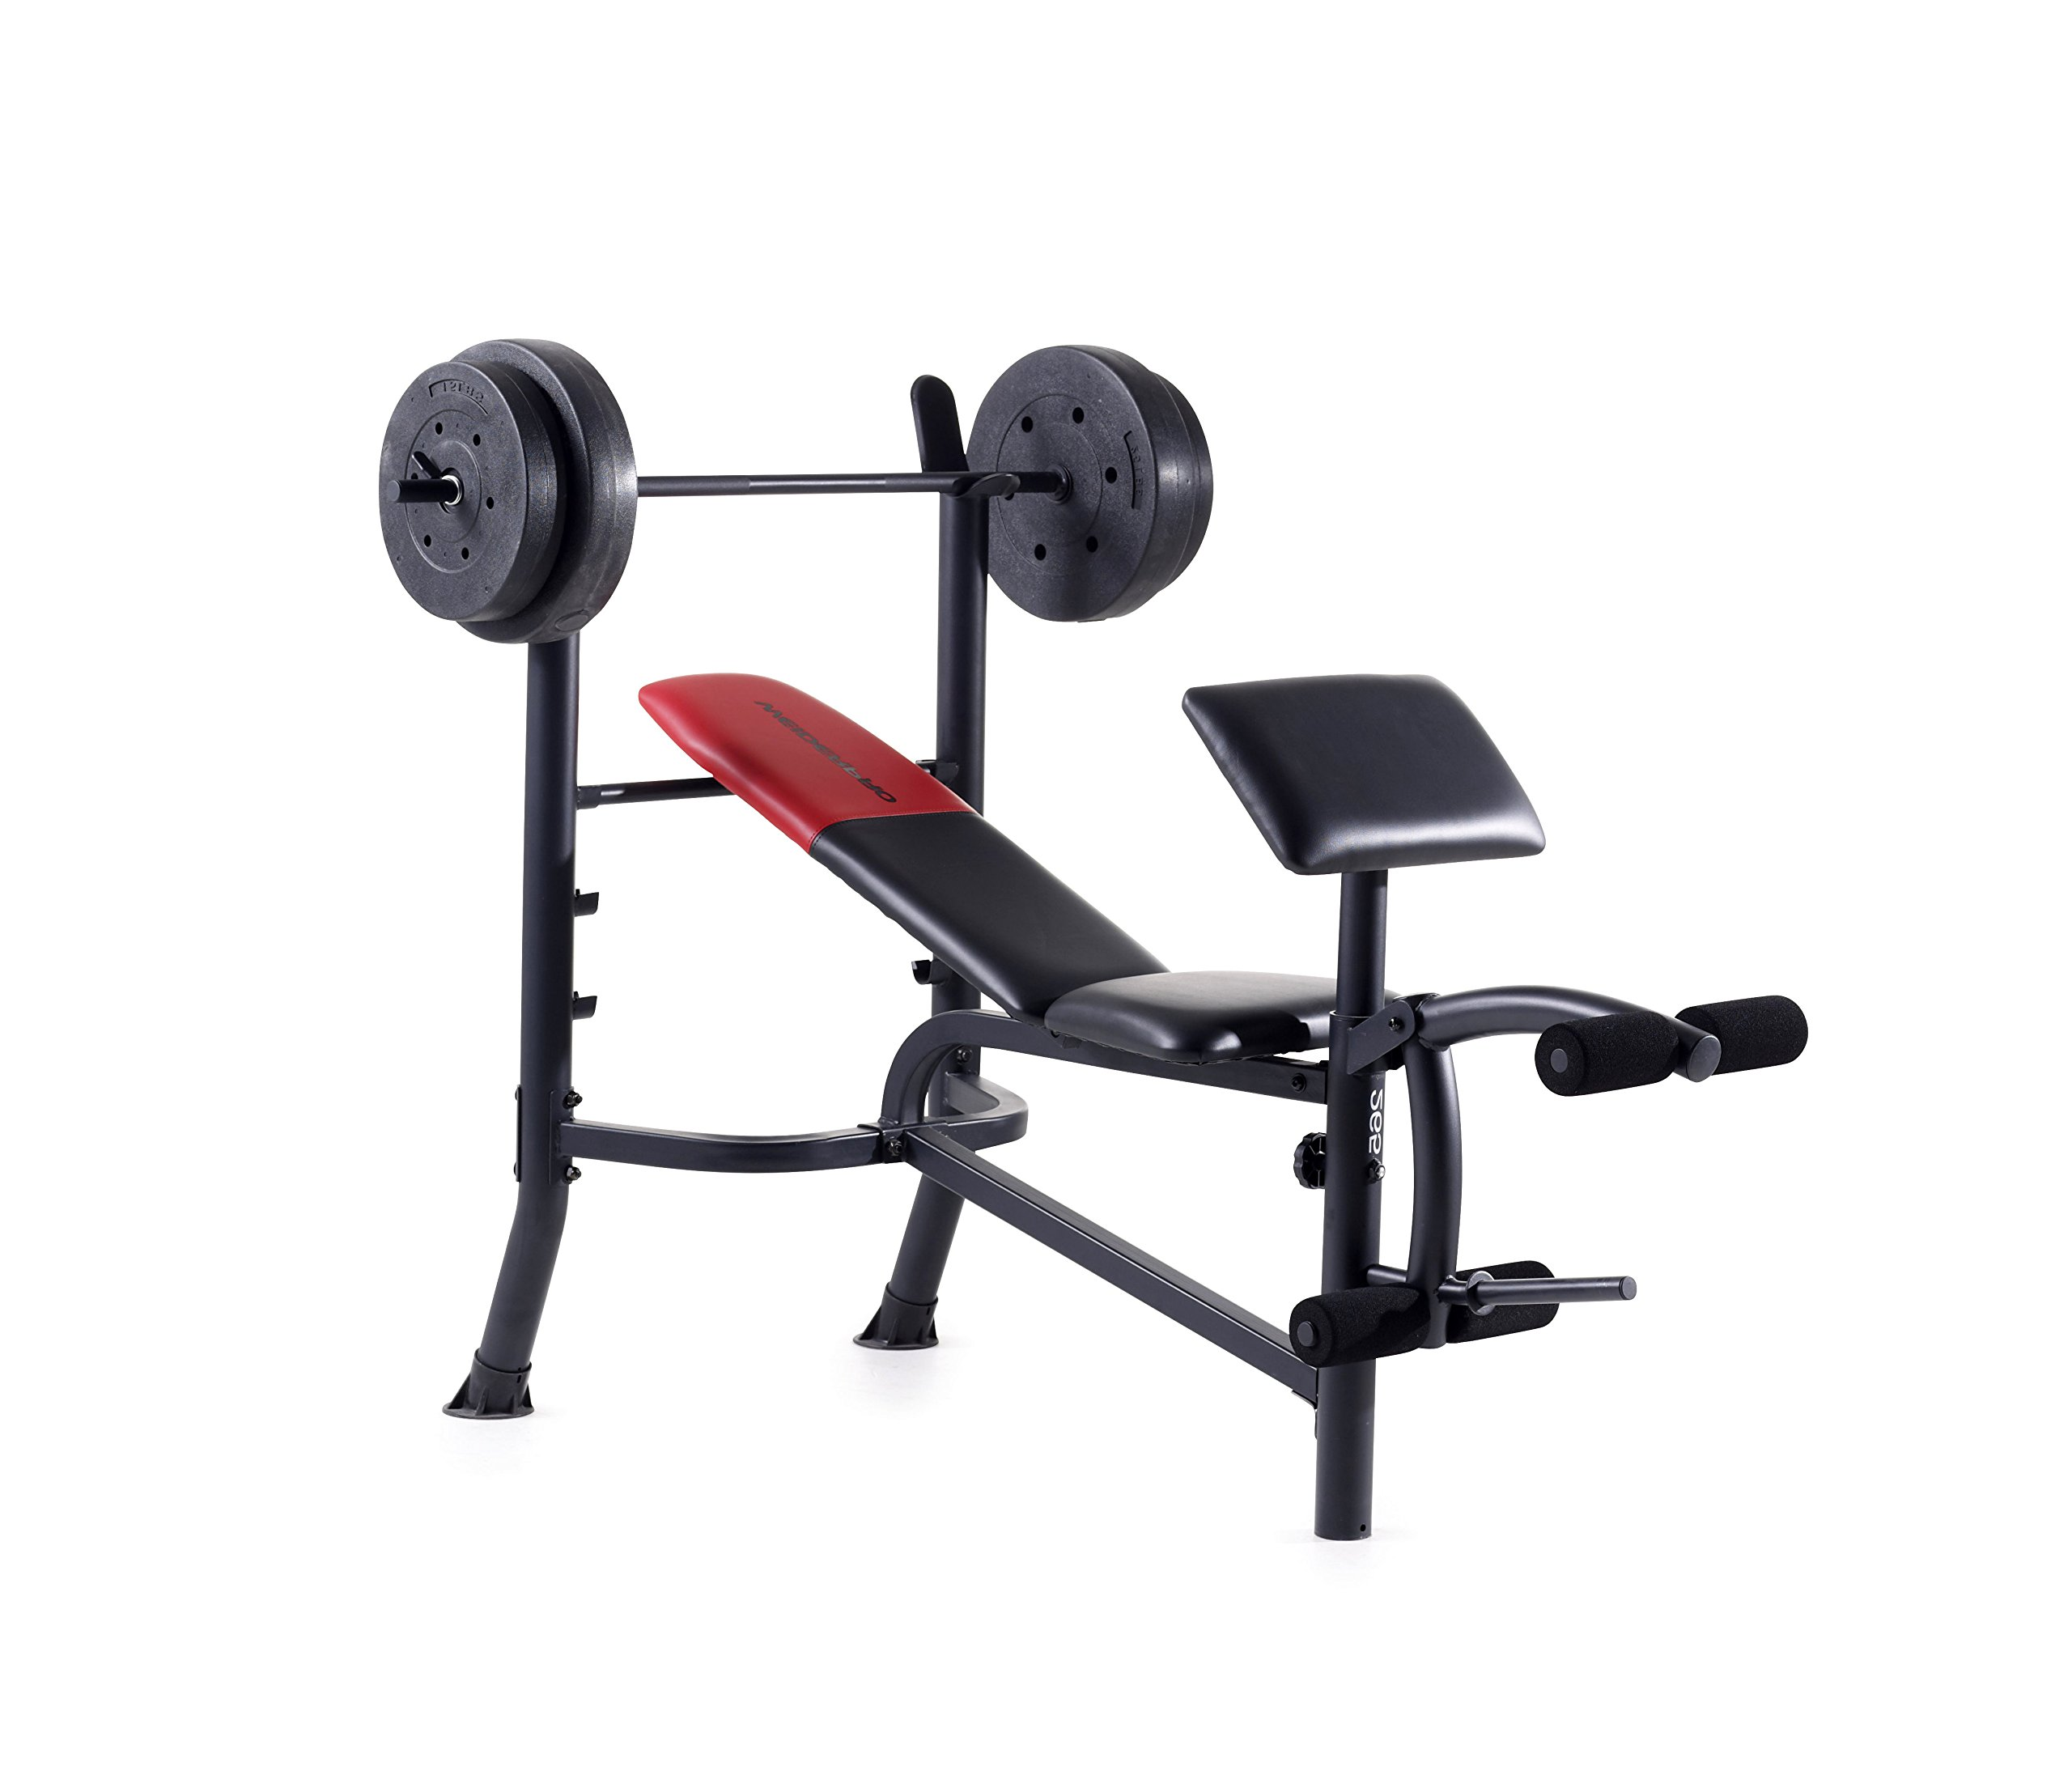 Weight Bench. Best Home Gym Sit Up Sport Workout, Fitness Equipment. For Building Muscle Strength, Endurance, Triceps, Biceps, Legs, Abs, Chest, Abdominal Exercises. Adjustable, Lightweight. by Weight - Bench